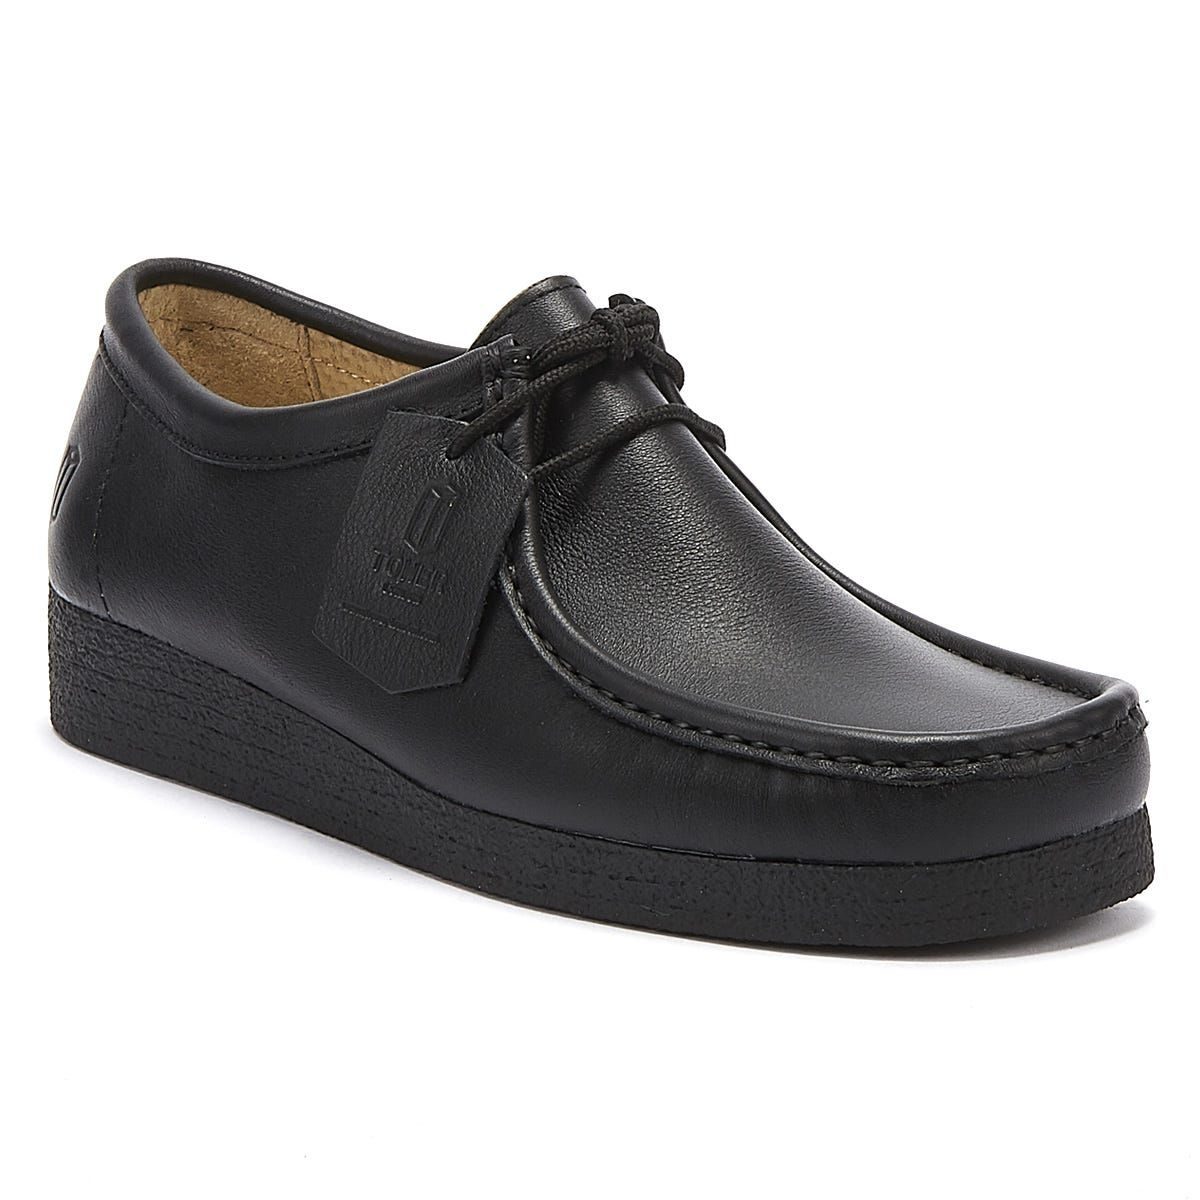 TOWER London Black Napa Leather Shoes